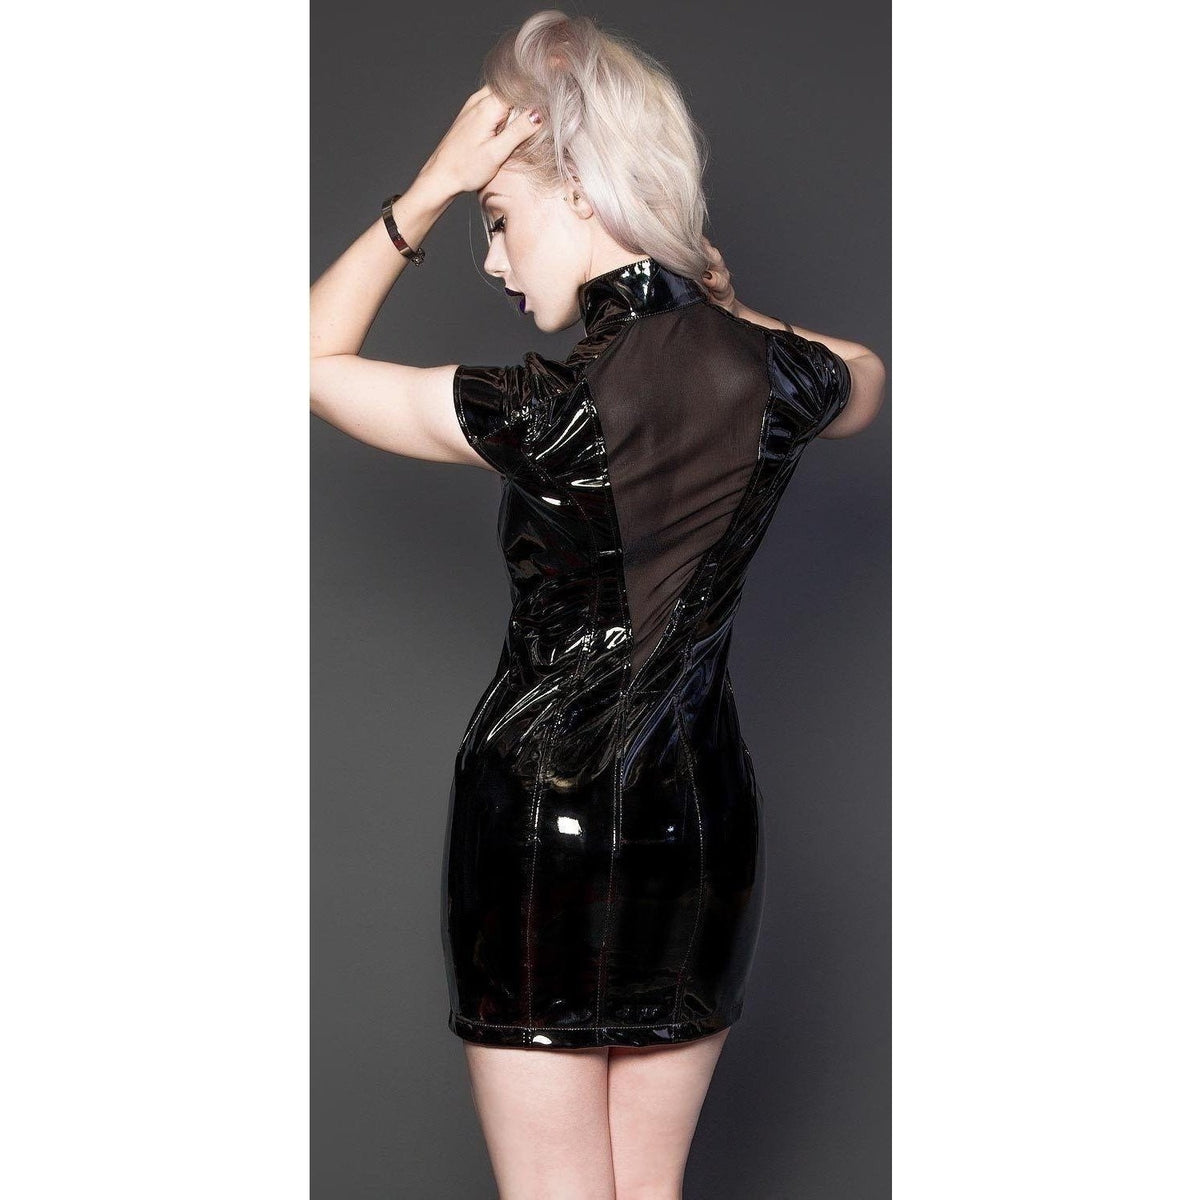 Lip Service Clasic Vinyl Black PVC Dress-Salemonster